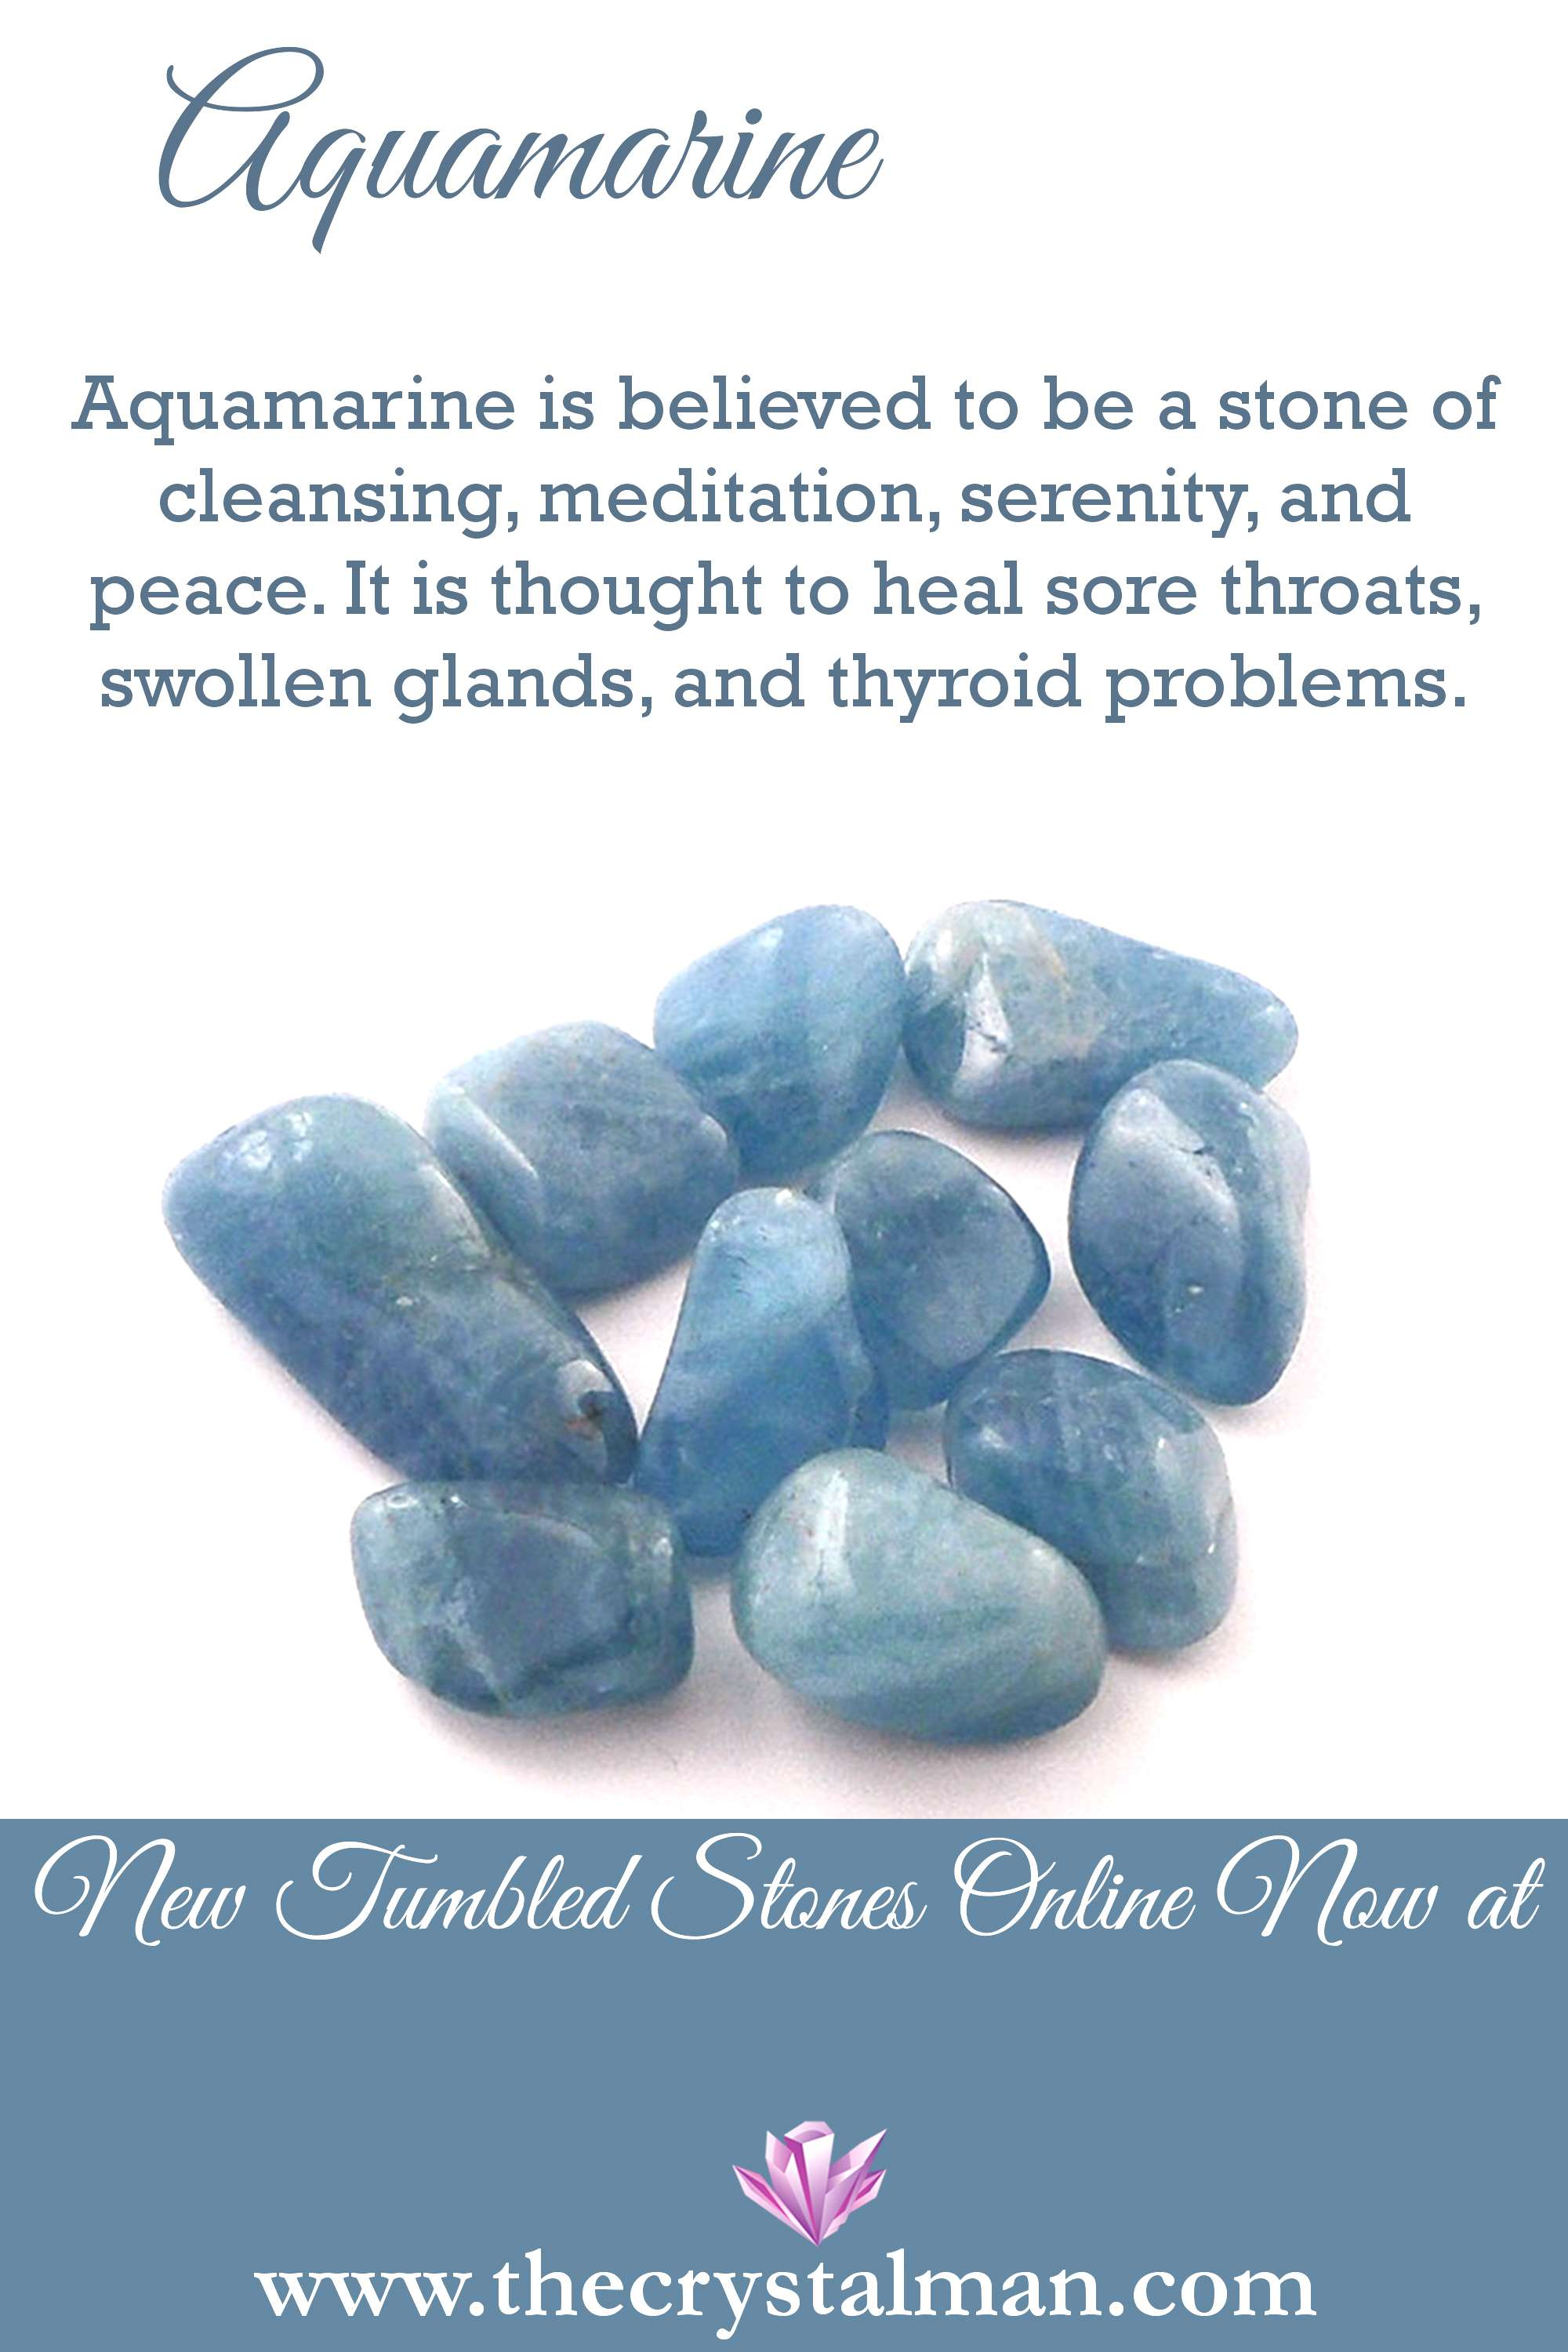 Aquamarine ~ Cleansing-Meditation-Serenity-Peace-Sore Throats-Swollen Glands-Thyroid You can shop n